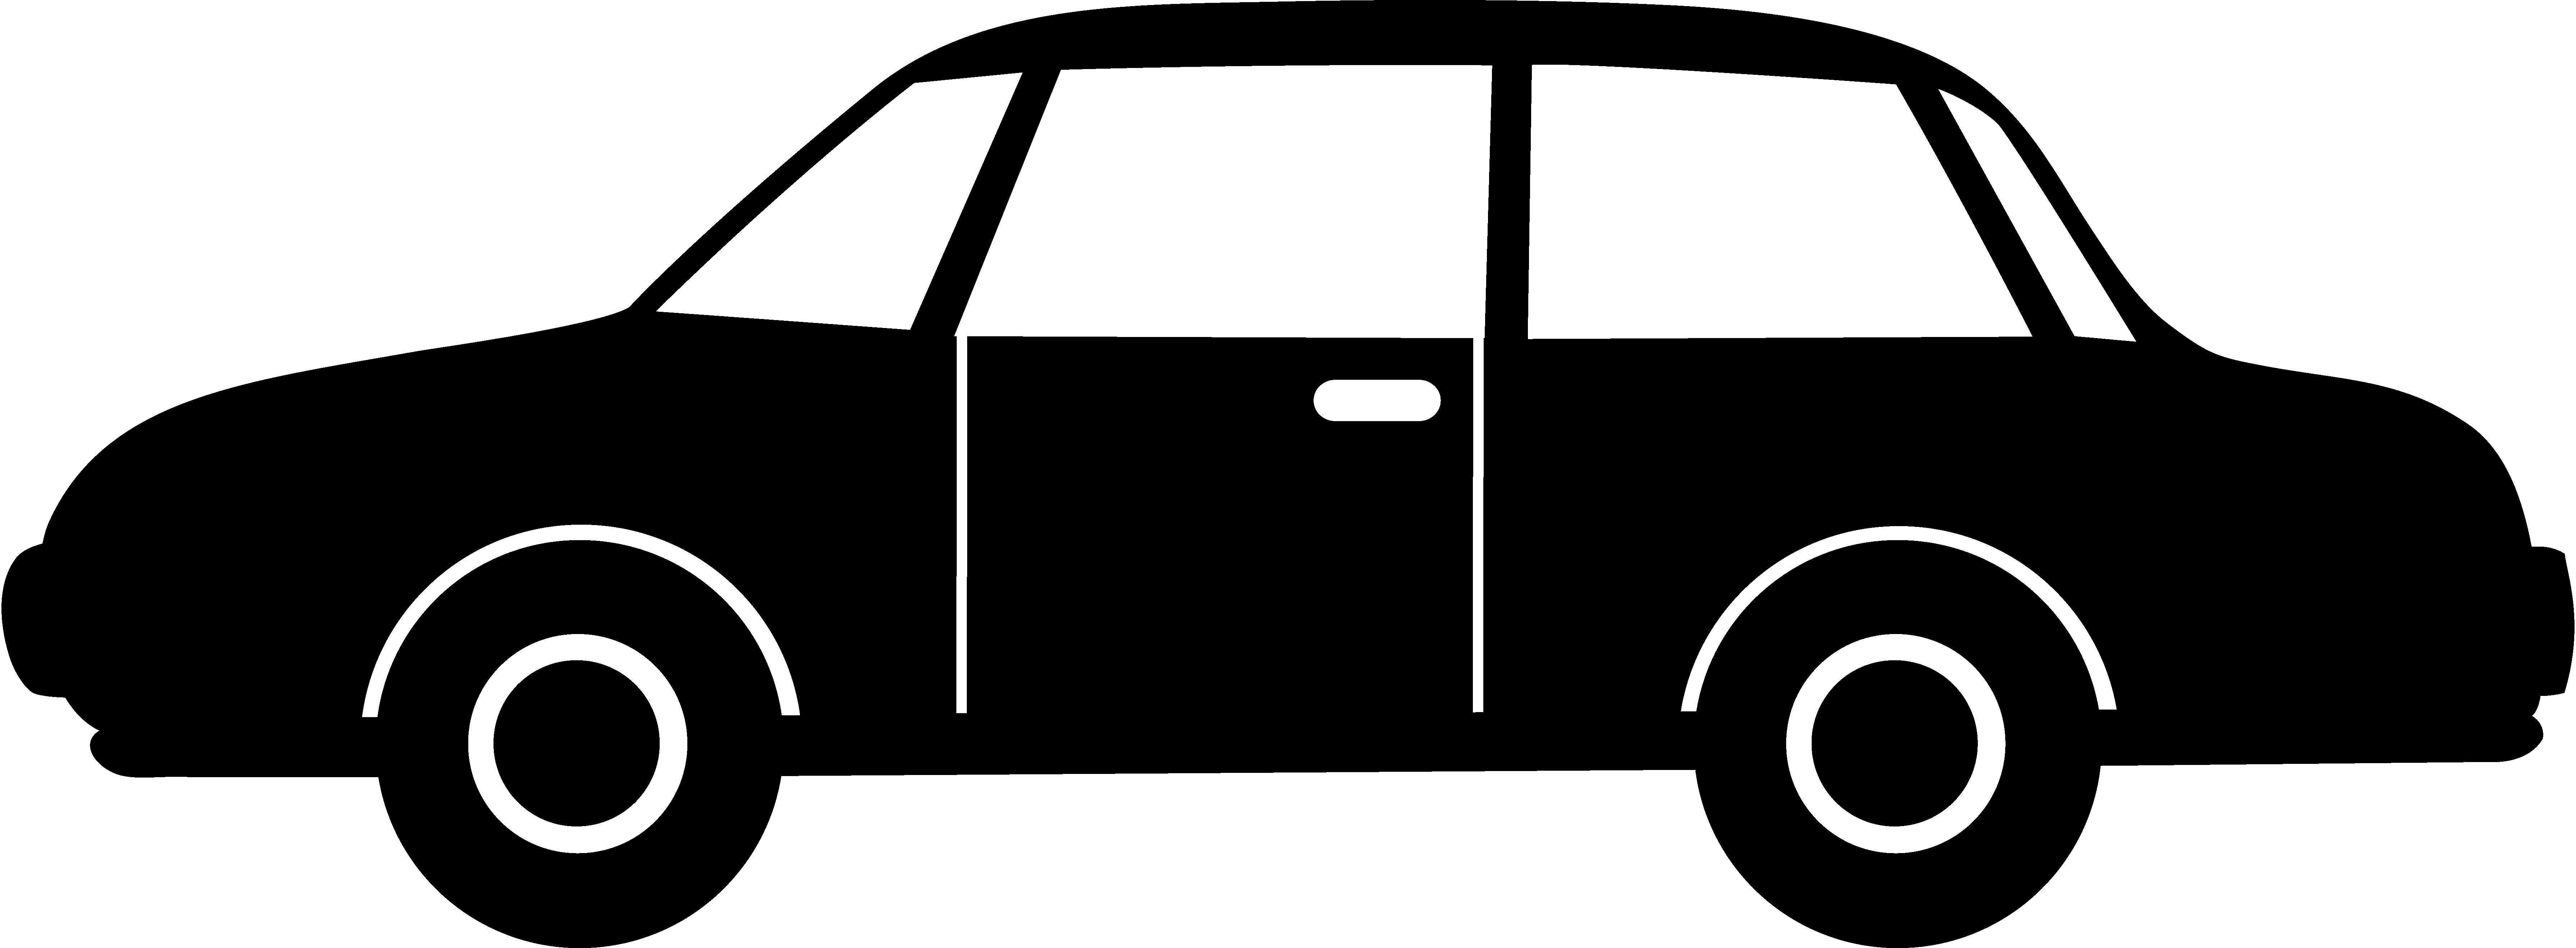 Car Clipart Side View | Clipart Panda - Free Clipart Images